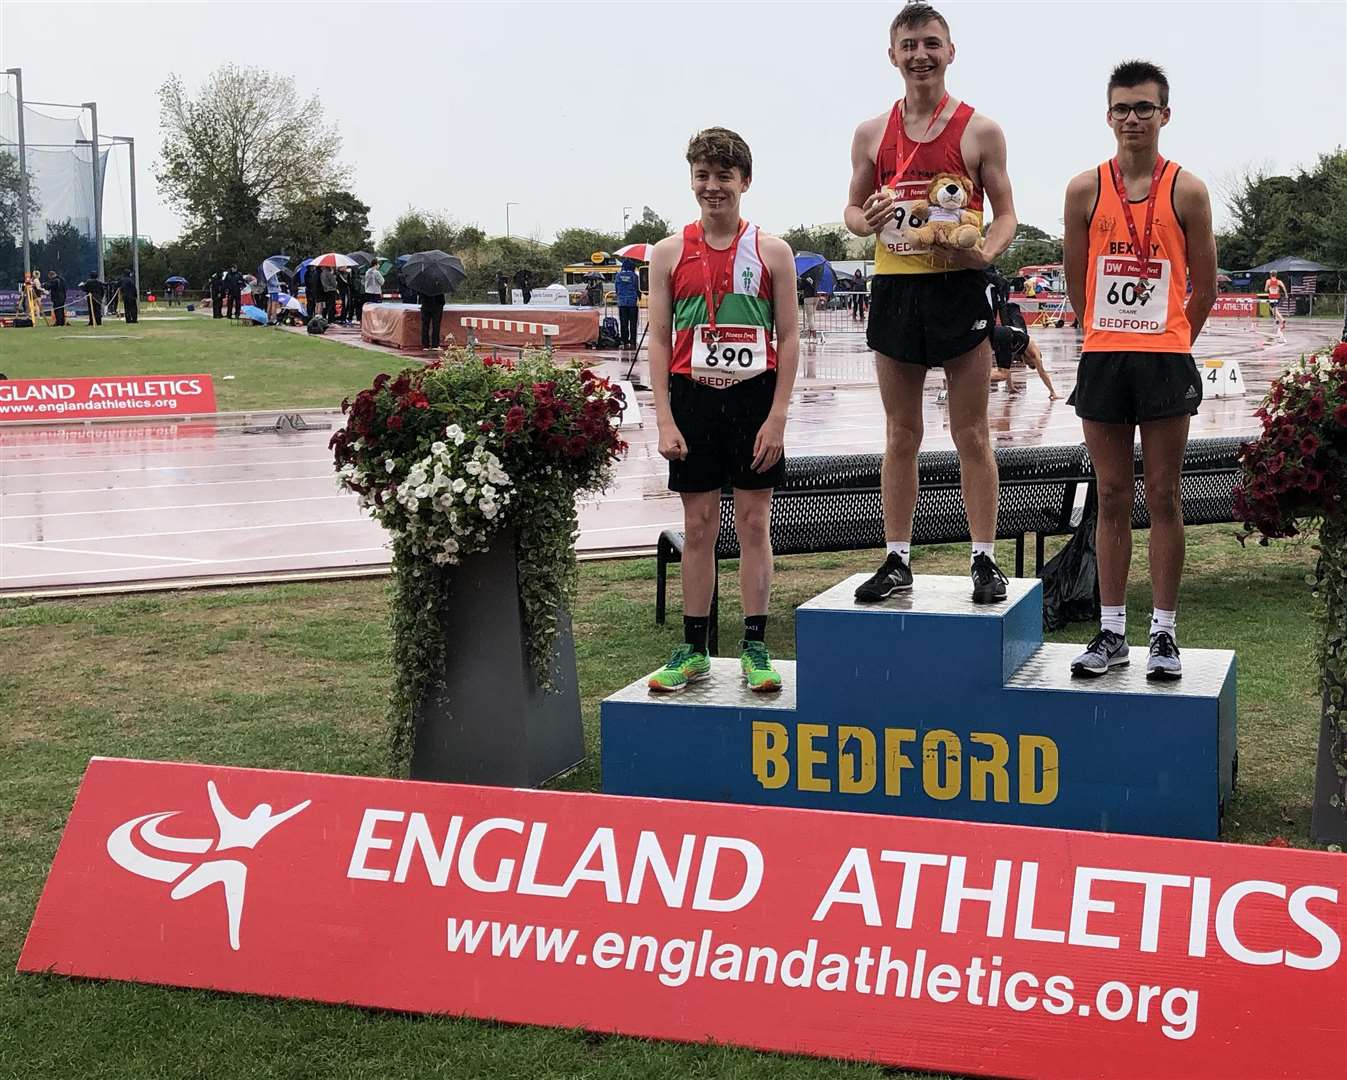 Top podium spot for George Wilkinson after winning the England Athletics Under-17 Championships, at 15-years-old (3948948)